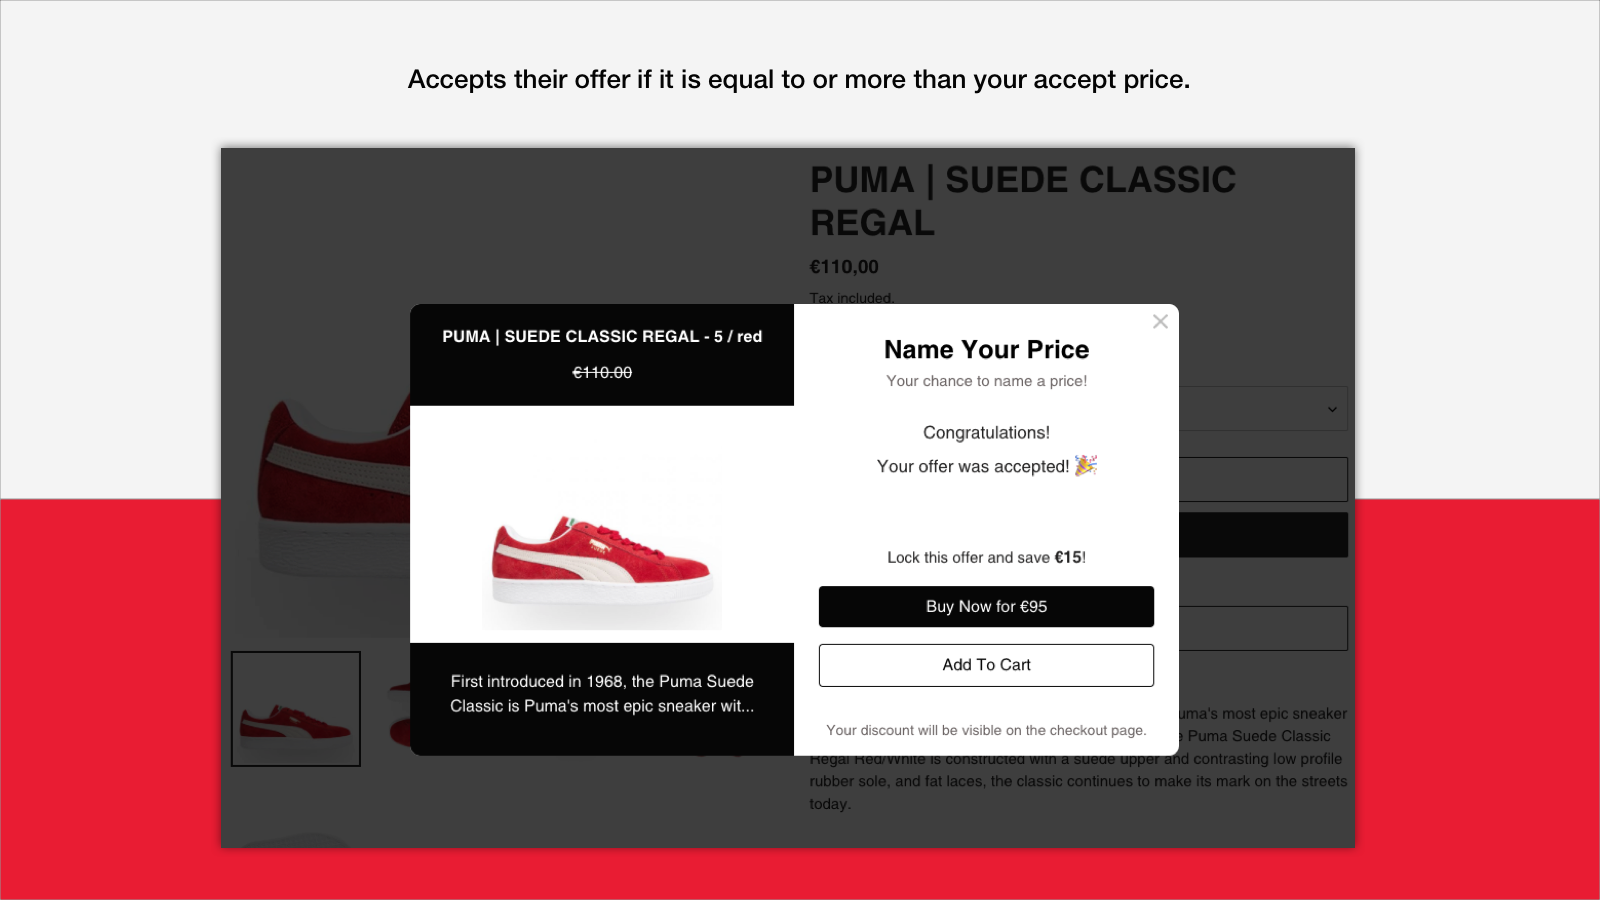 Name Your Price - Accept Offer